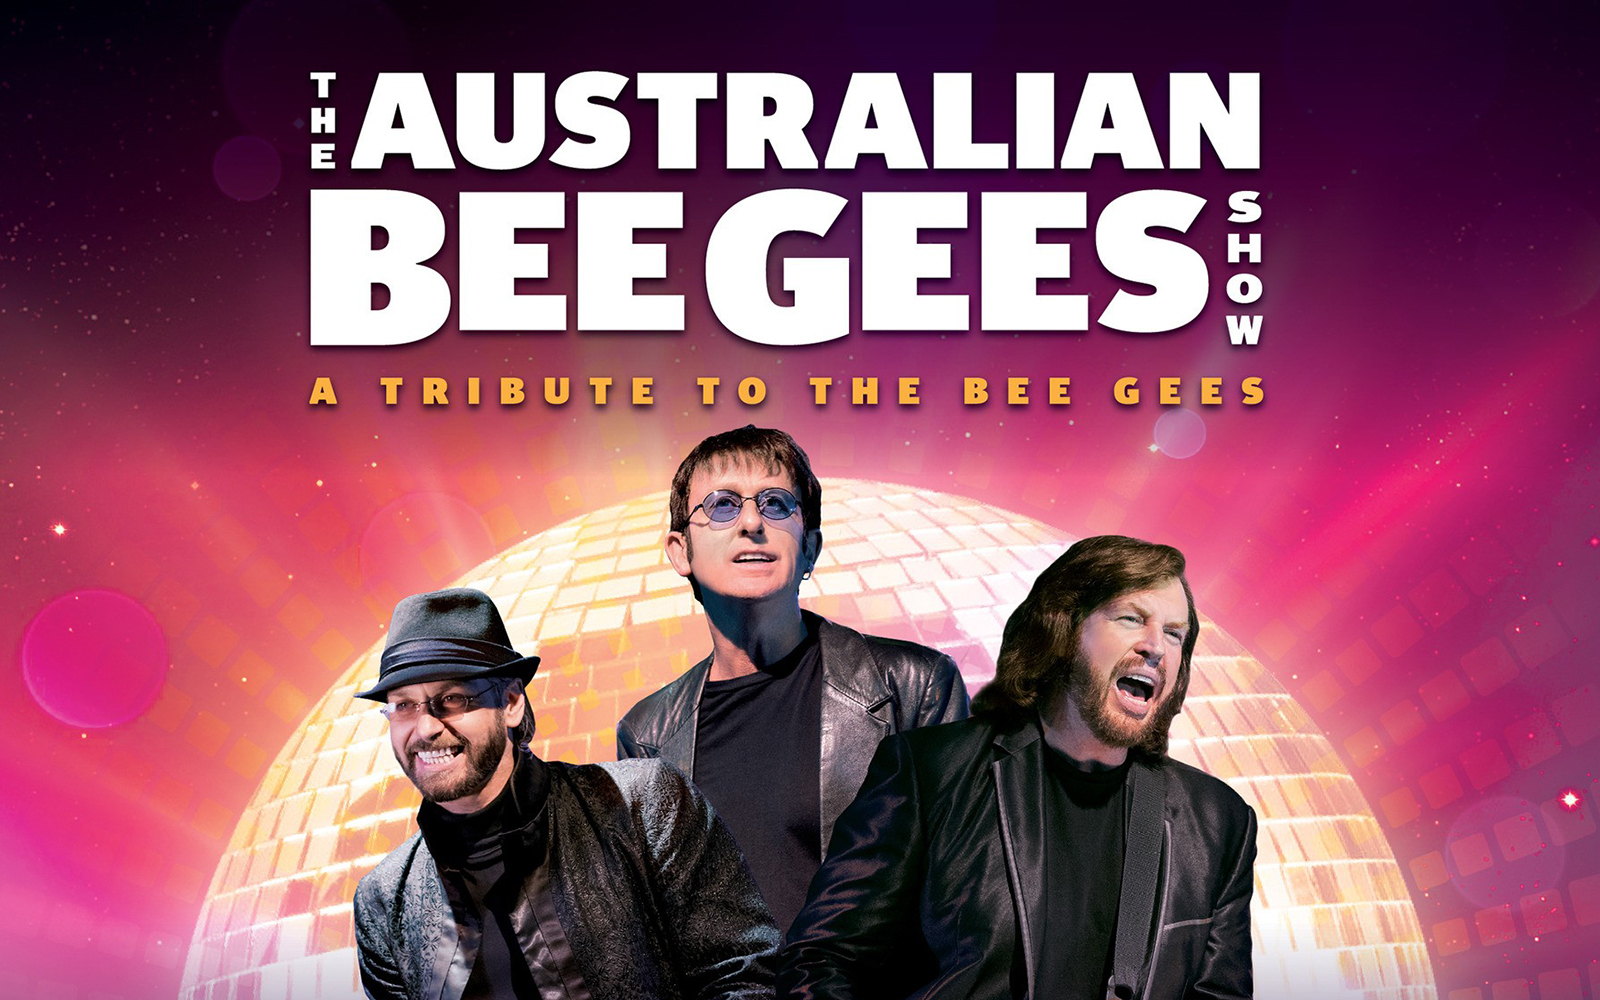 F89649e0 10ac 450c ab65 f090a492e03d 1080 las vegas the australian bee gees 01